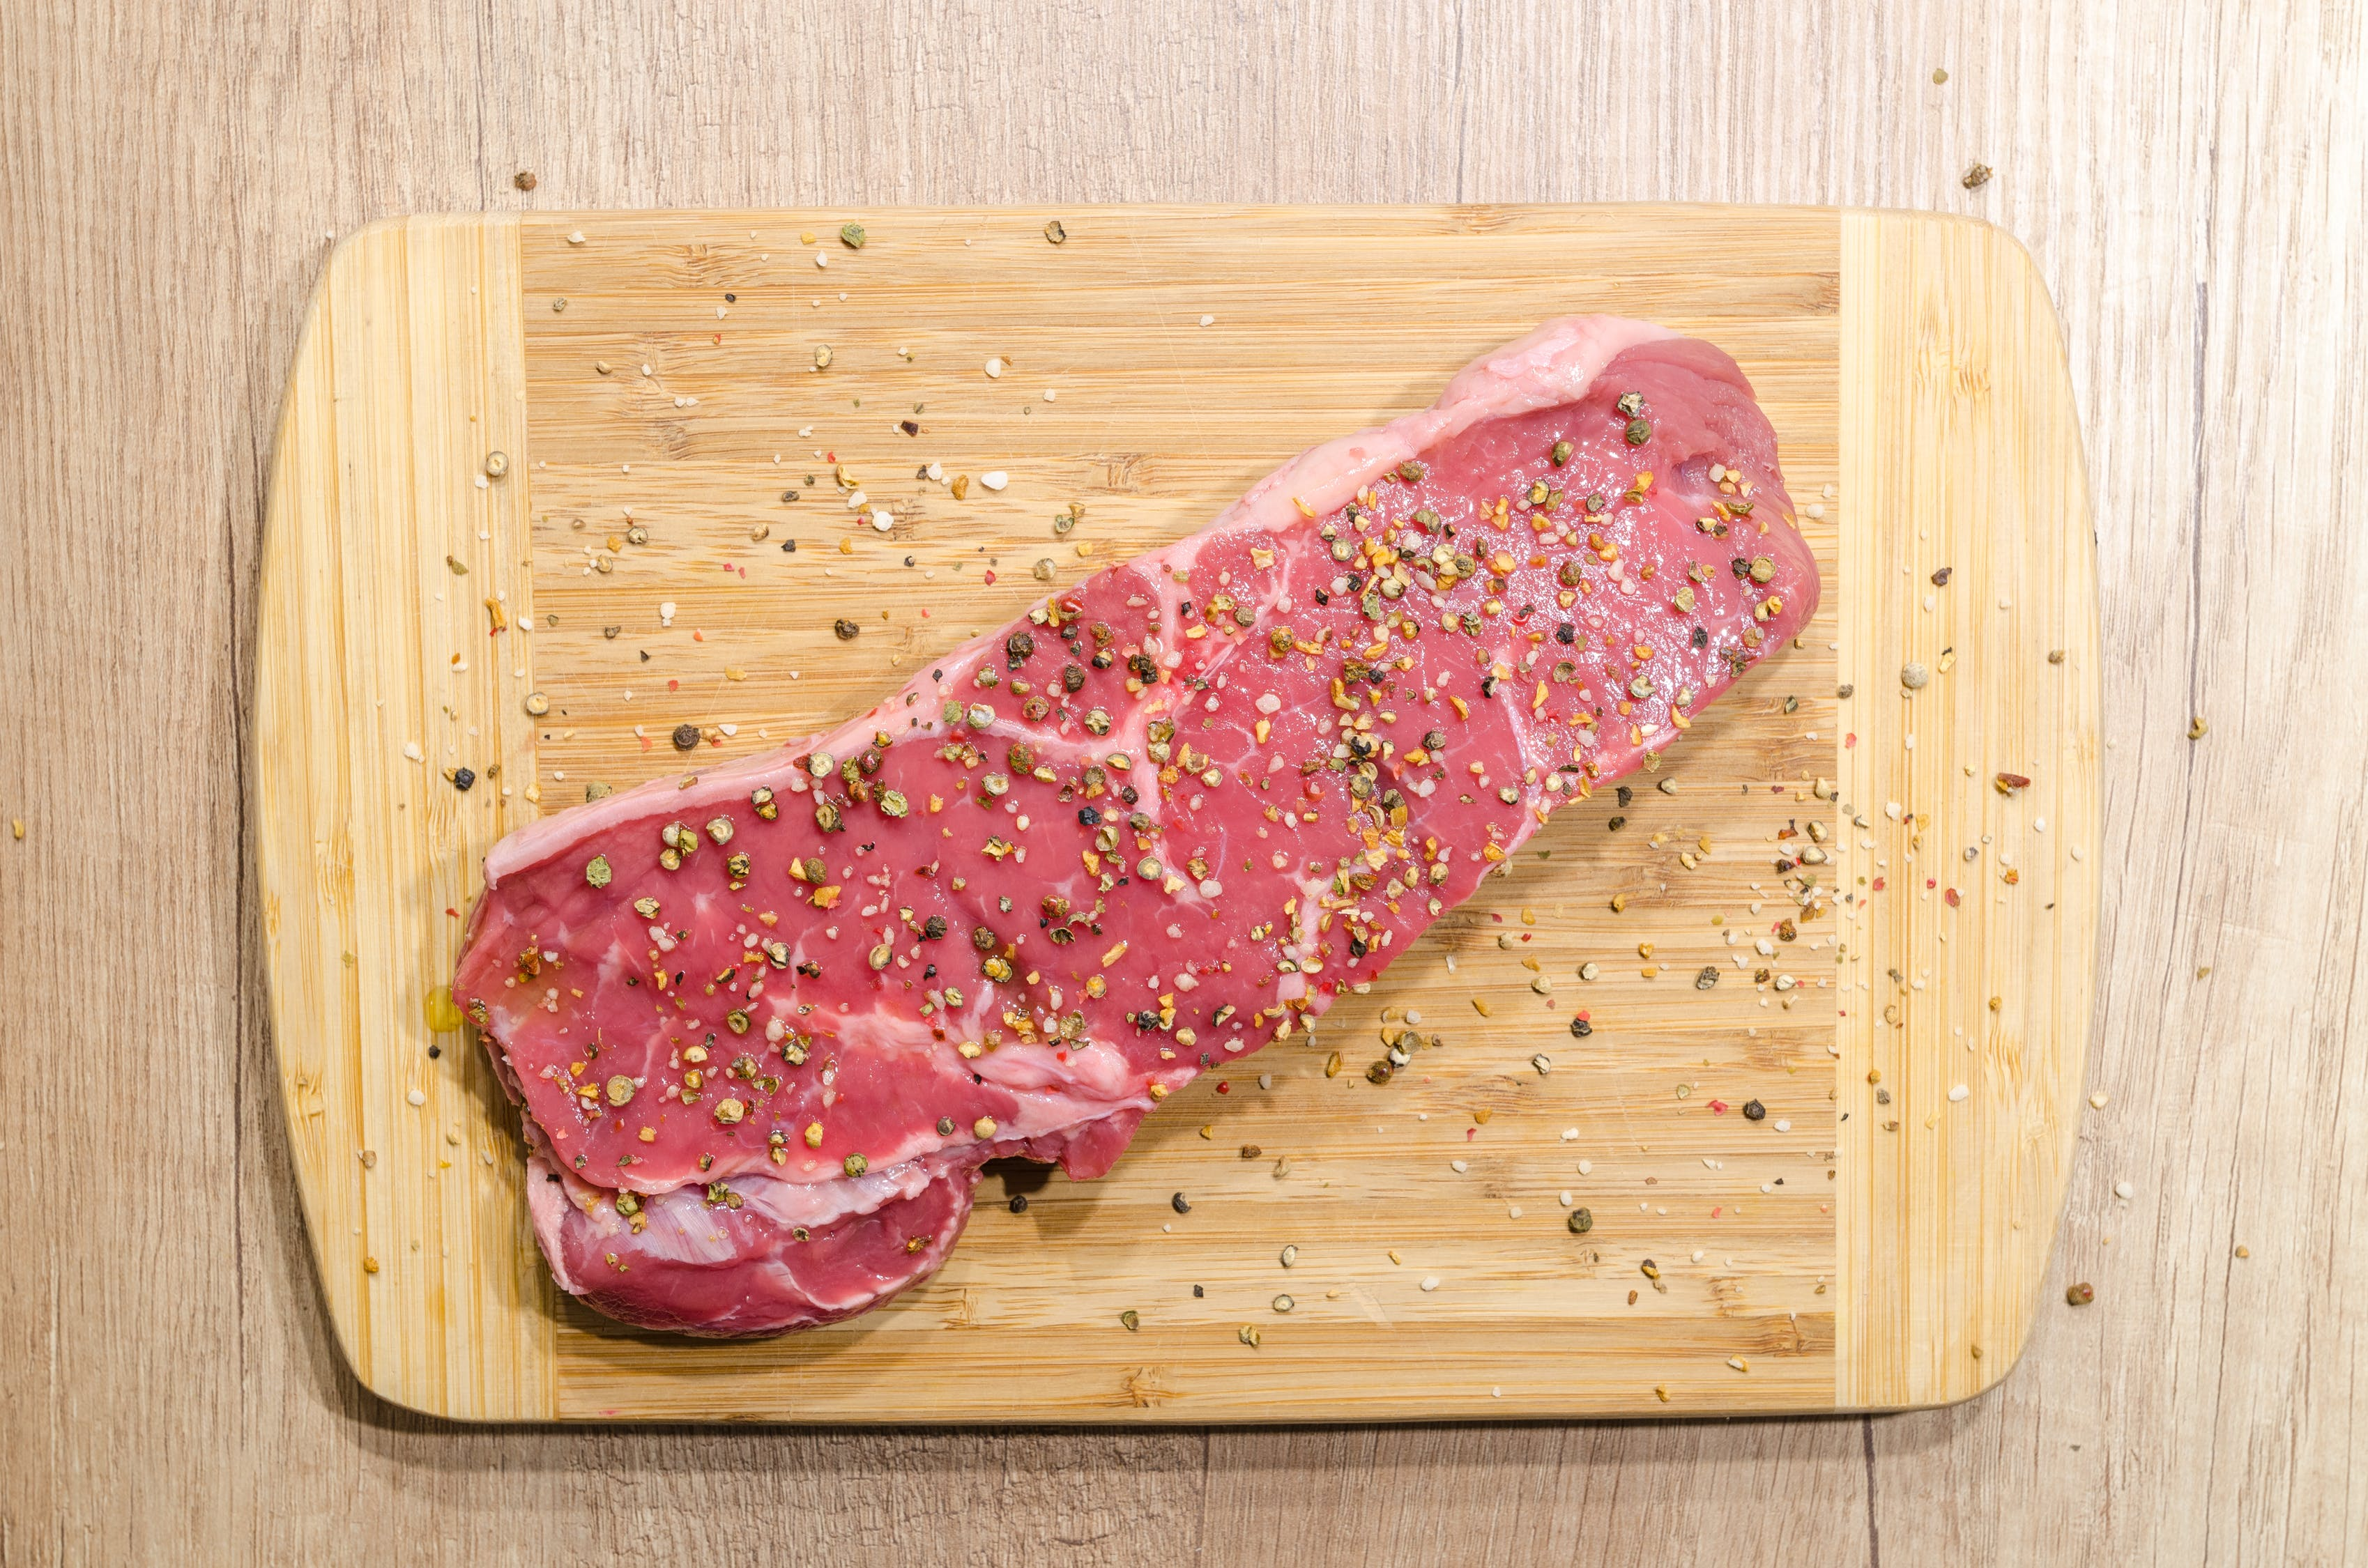 A cut of lean beef on a cutting board with seasonings.